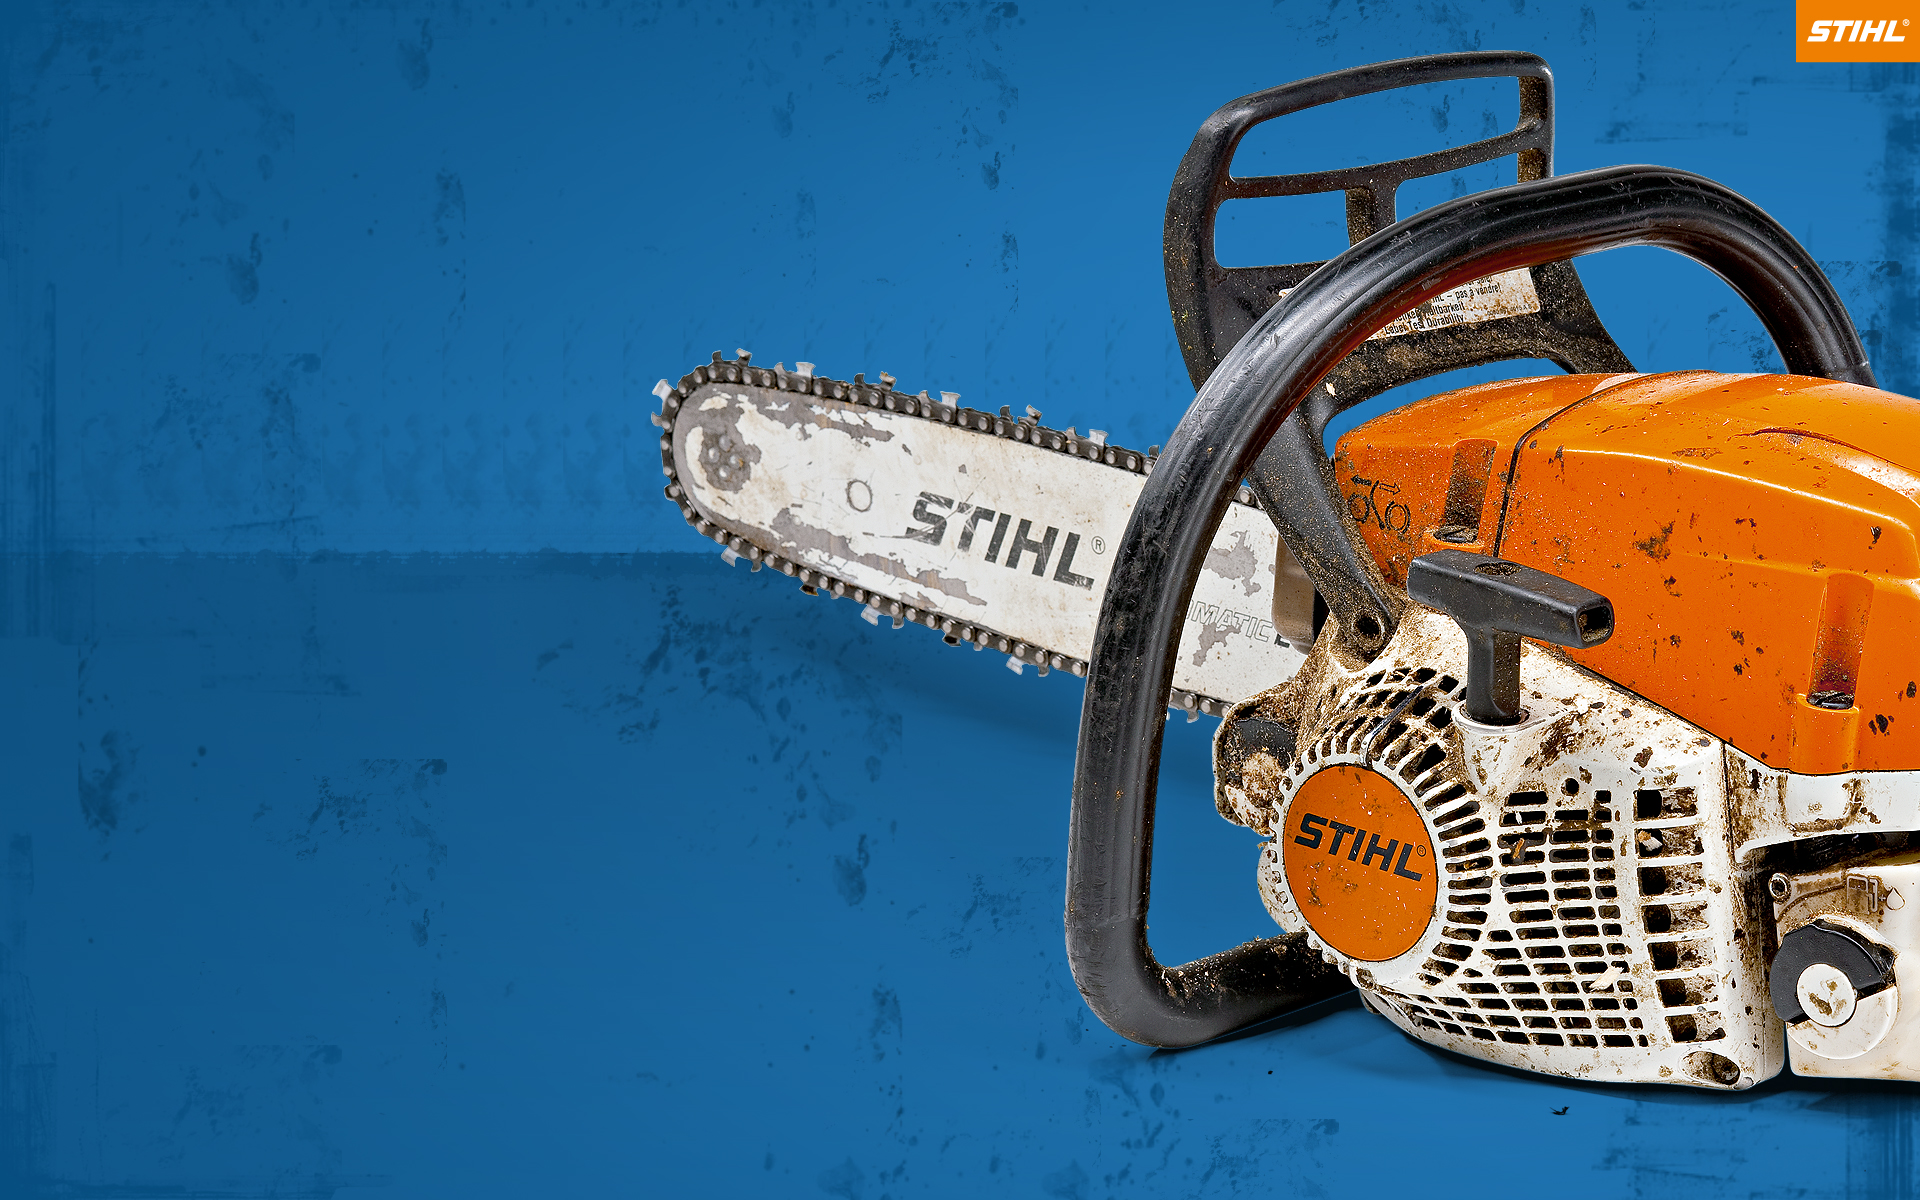 Our Wallpaper for more STIHL on your screen STIHL STIHL 1920x1200